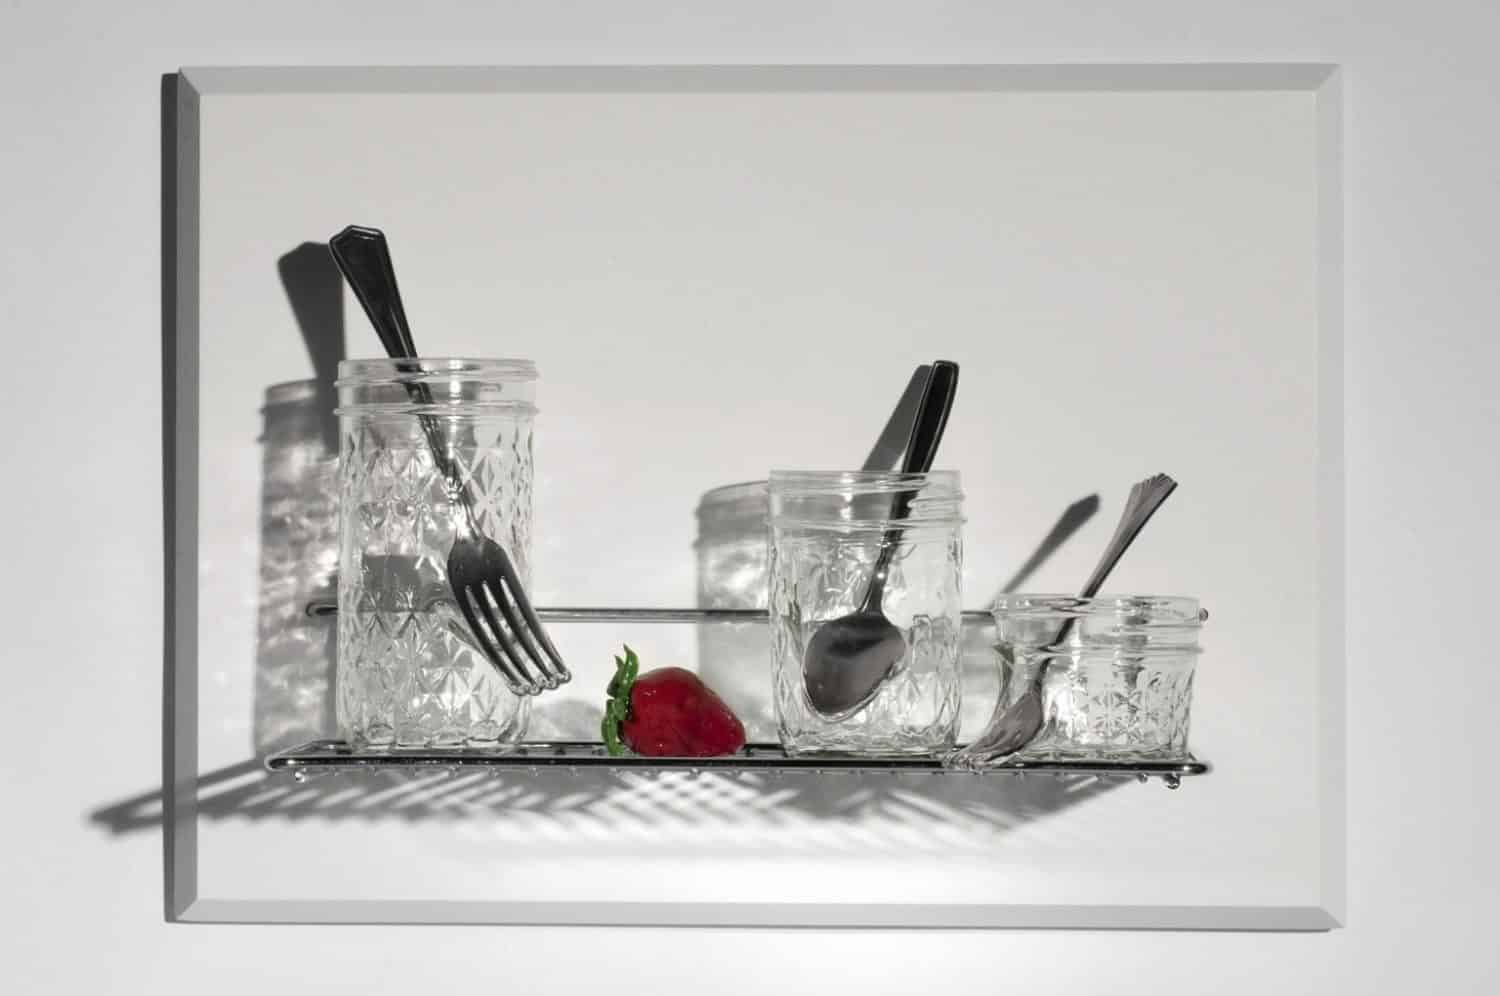 """From small beginnings come great things,"" Jelly jars, cutlery, flame worked glass, stainless steel, 12 x 16 x 6 inches, photo credit: Elizabeth Torgerson-Lamark"